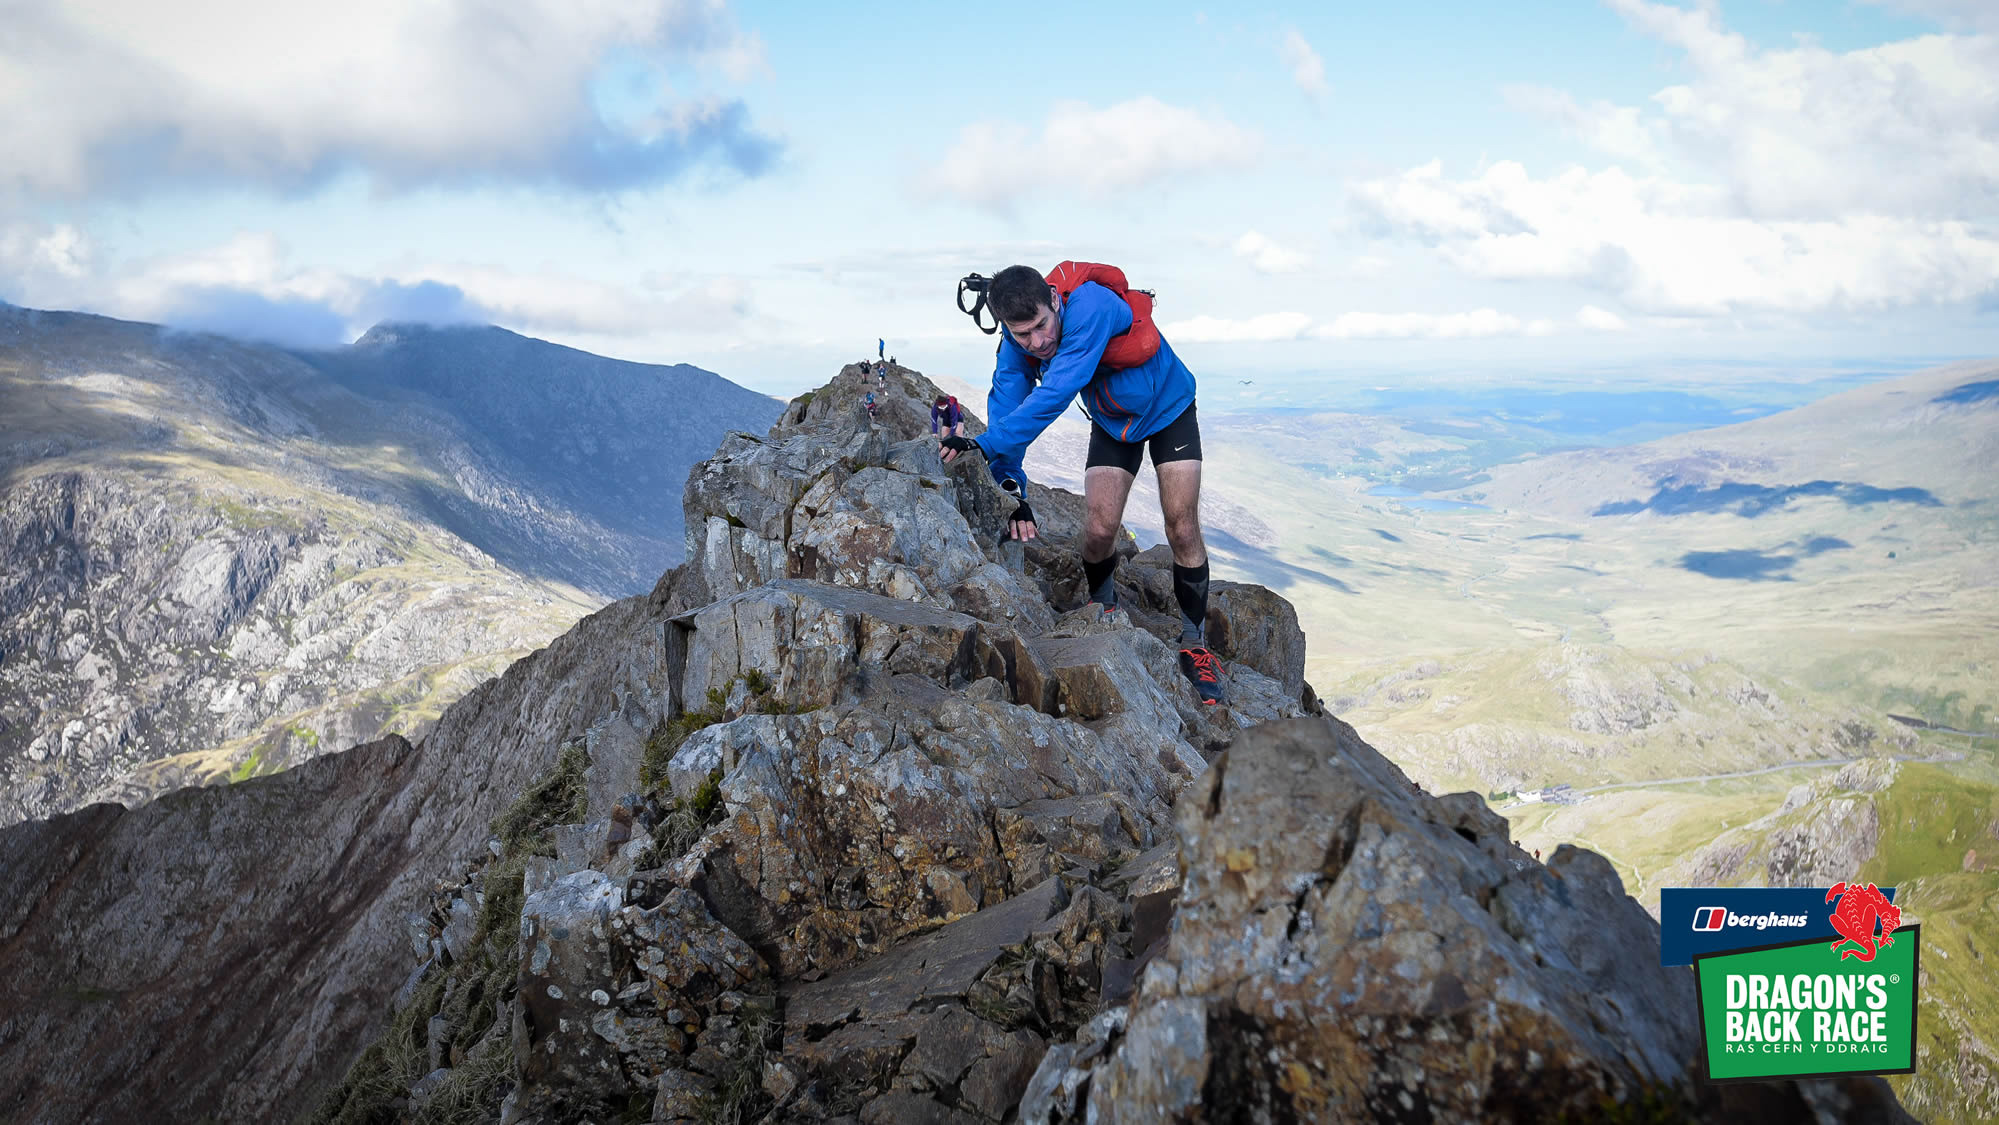 Dragons Back Race 2019 - Crib Goch